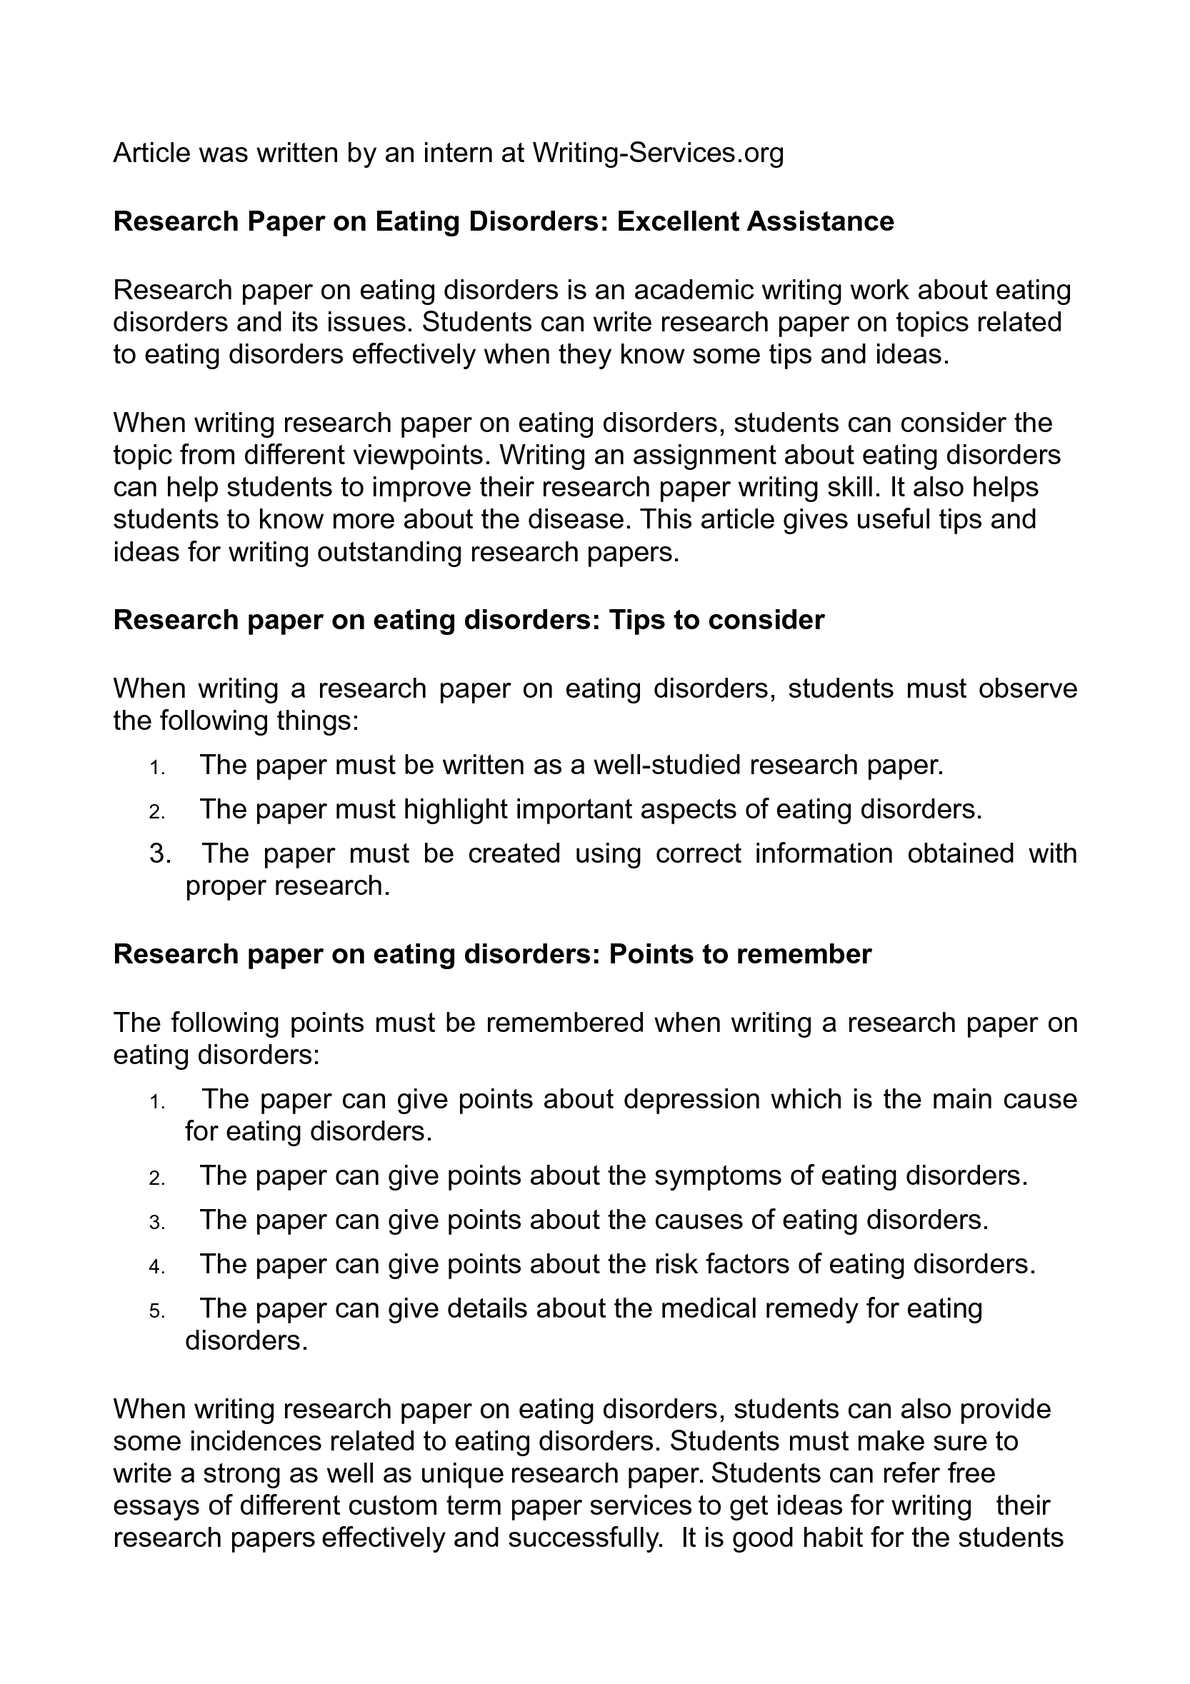 001 Research Paper P1 Free Papers On Eating Wondrous Disorders Full